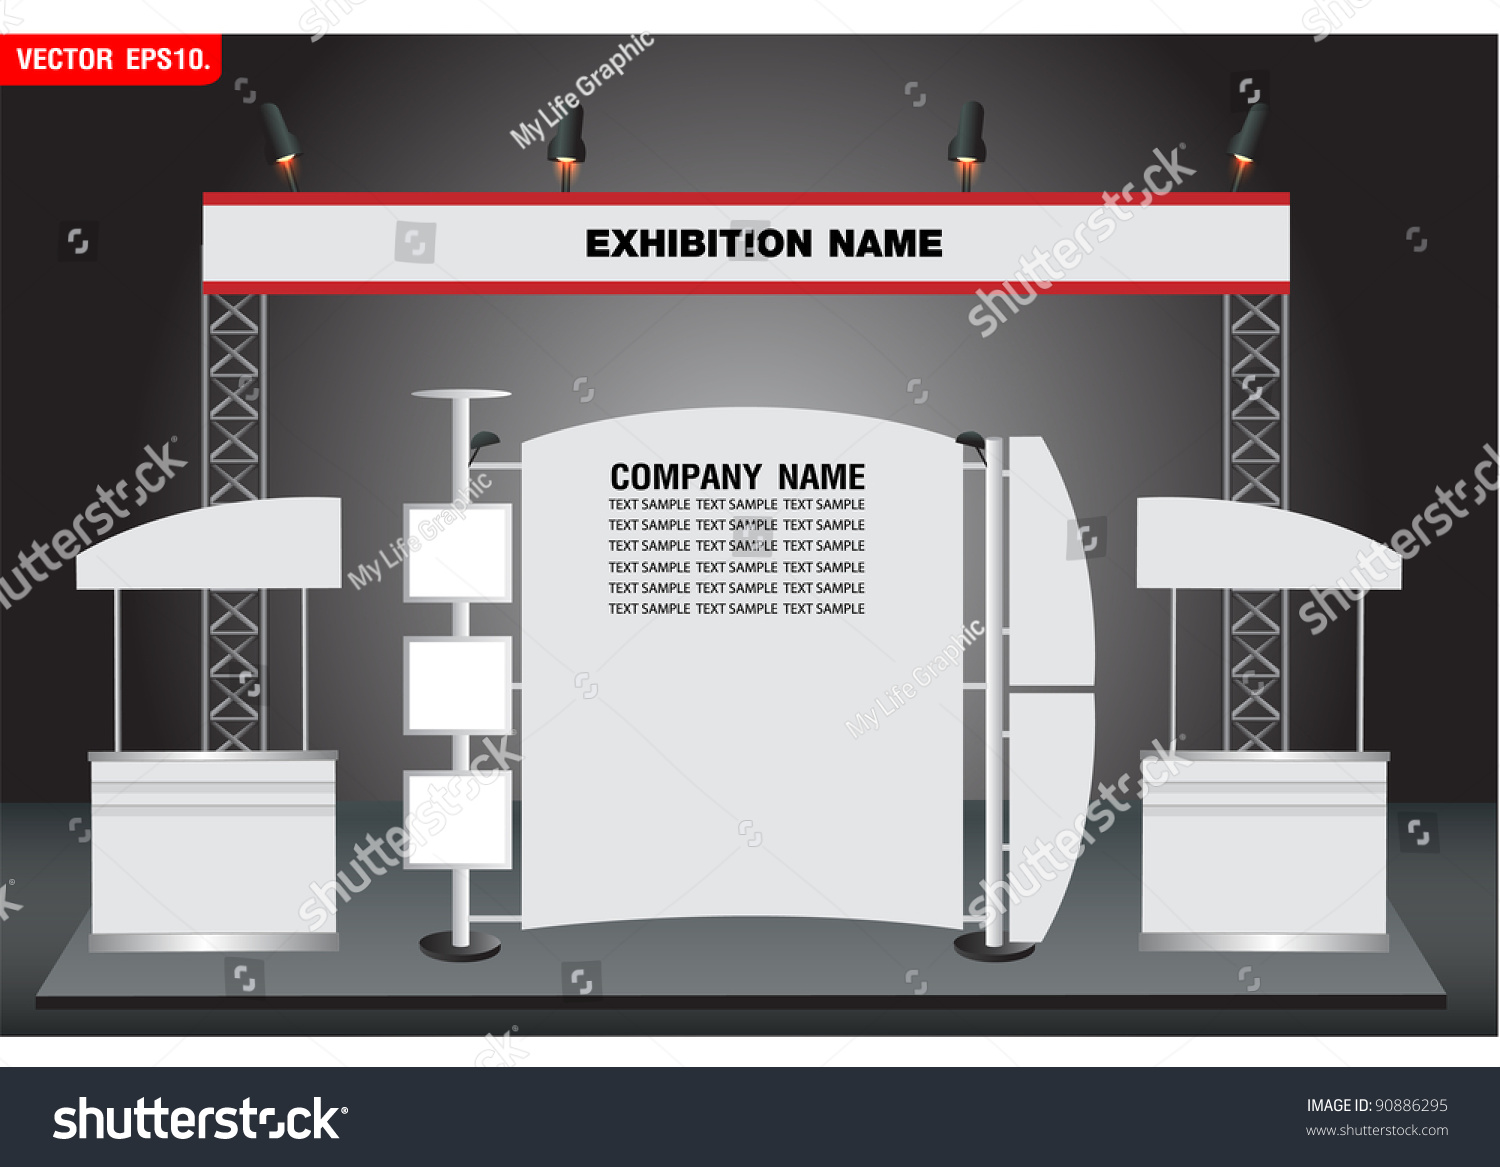 Exhibition Stand Design Vector : Blank trade exhibition and promotion stand vector